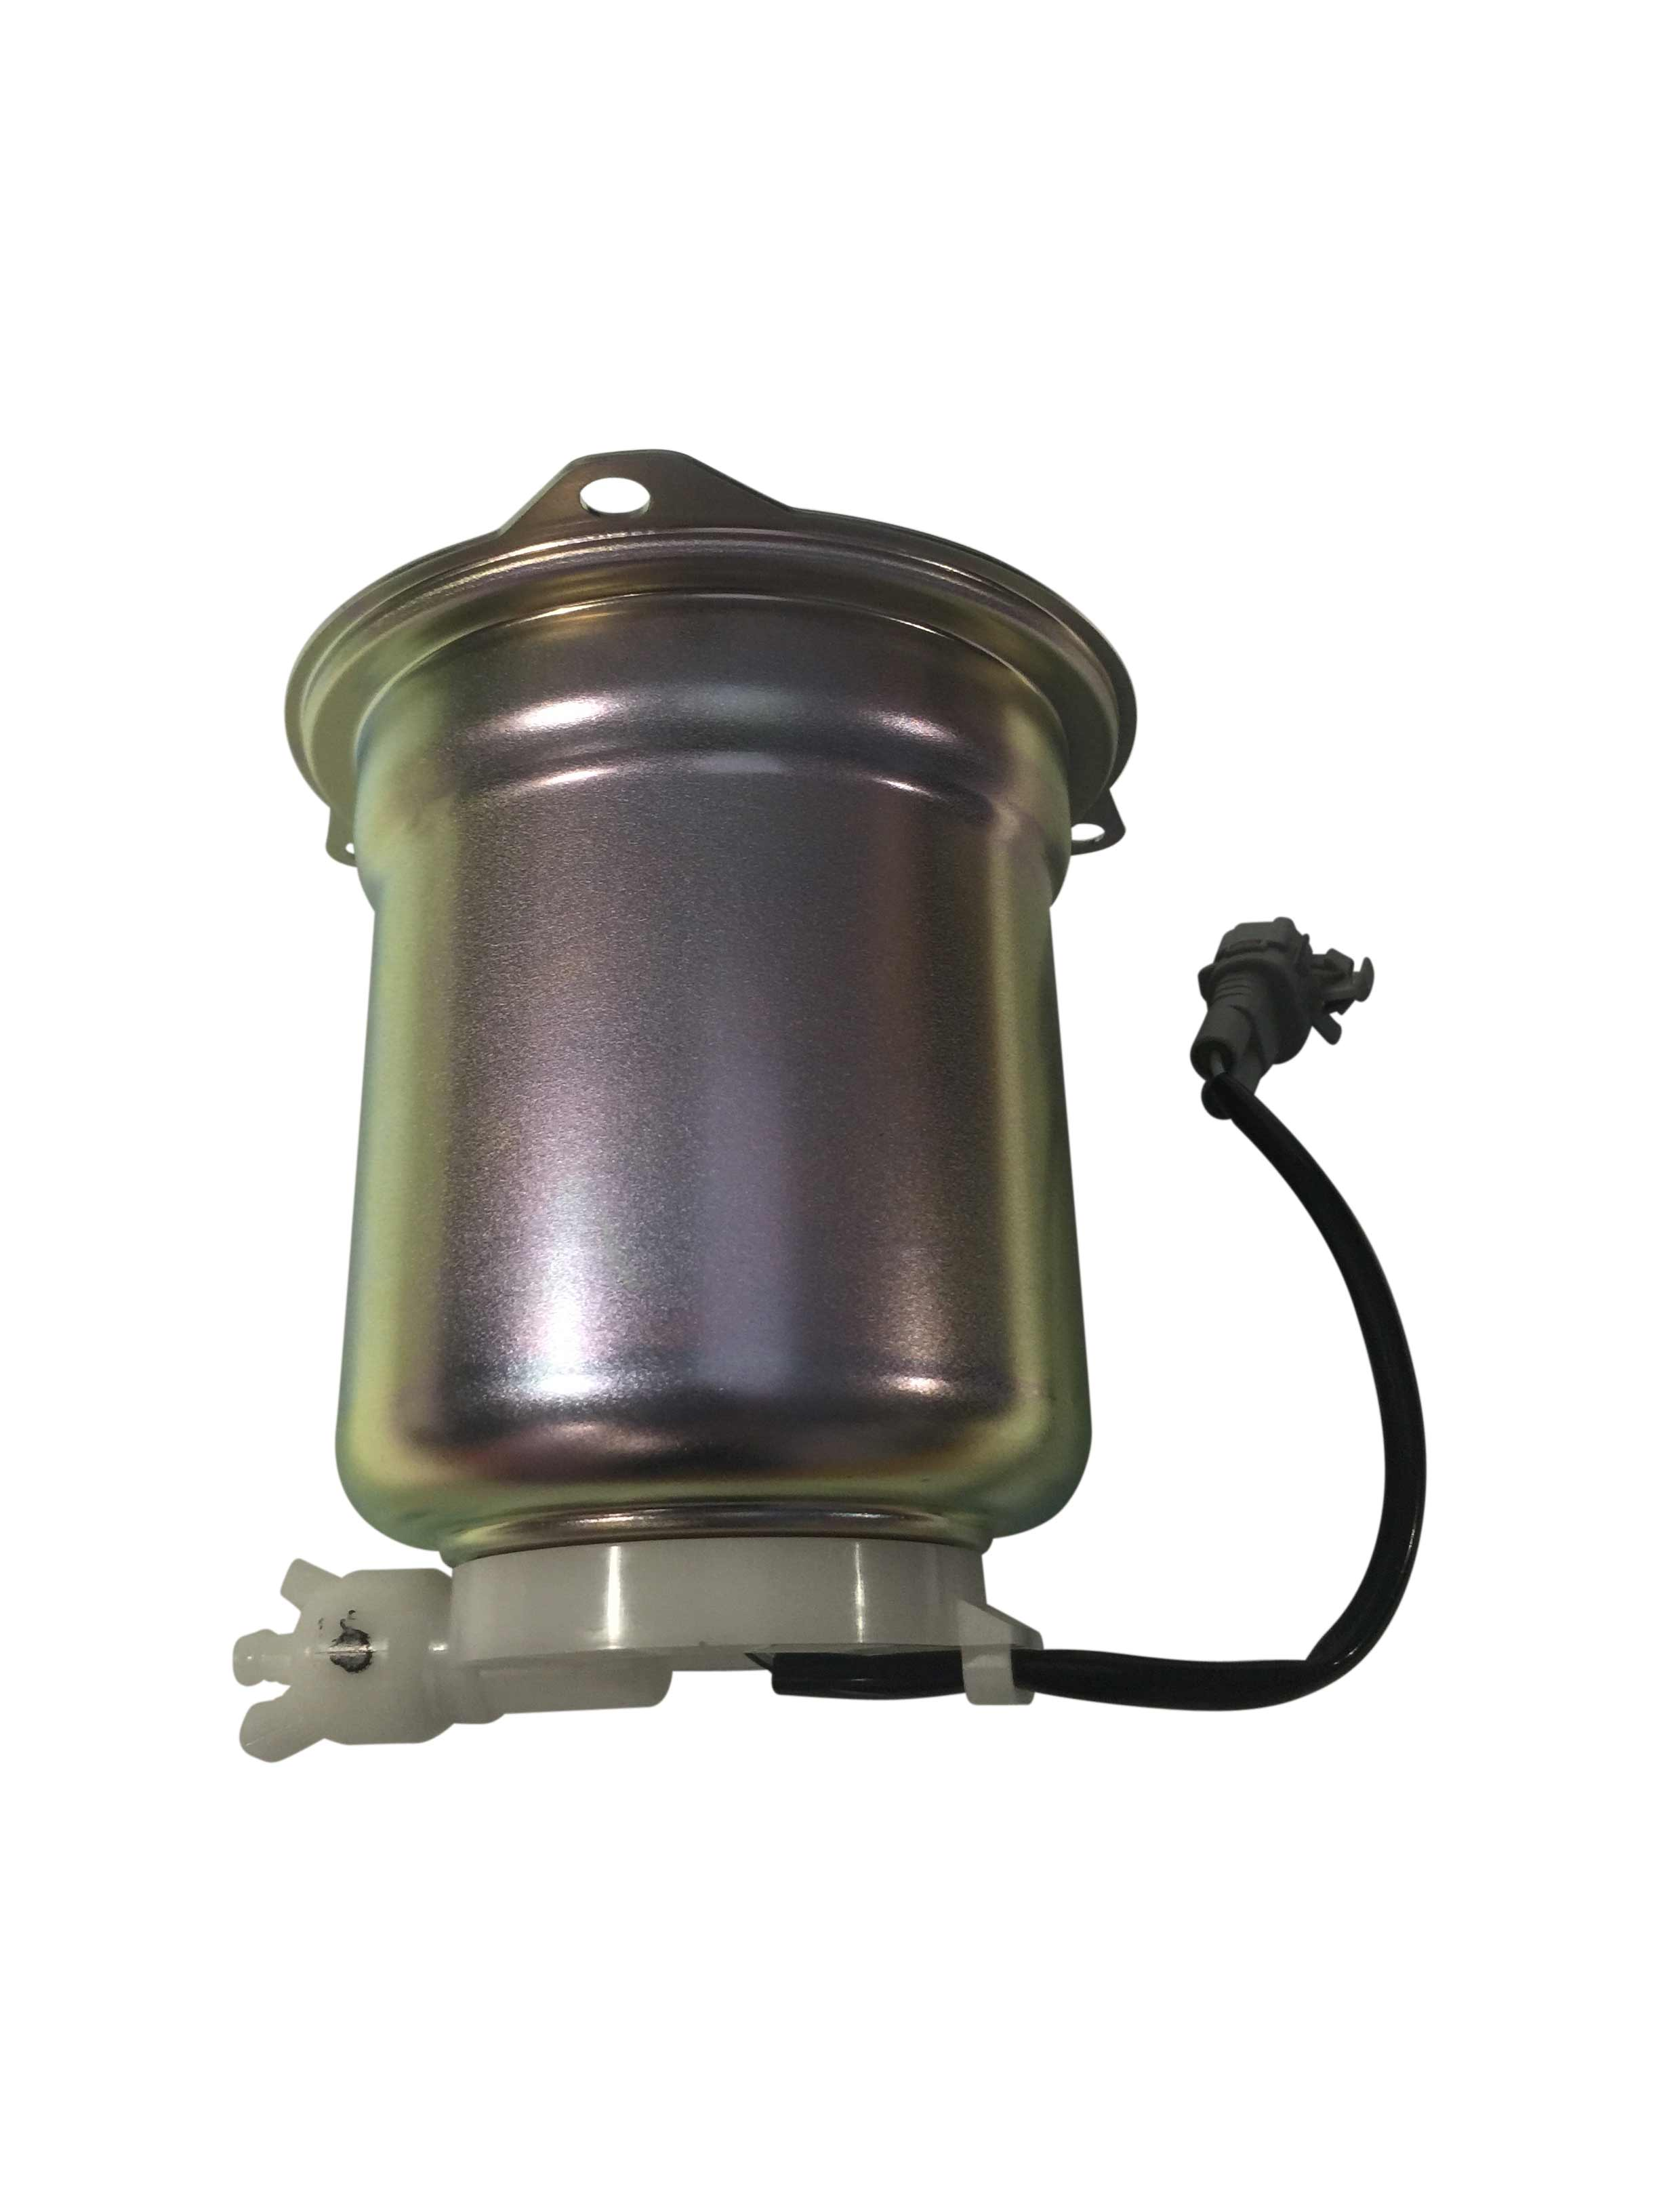 Fuel Filter Location On 2009 Toyota Camry Housing Suitable For Landcruiser Vdj 45l V8 Turbo Diesel Genuine